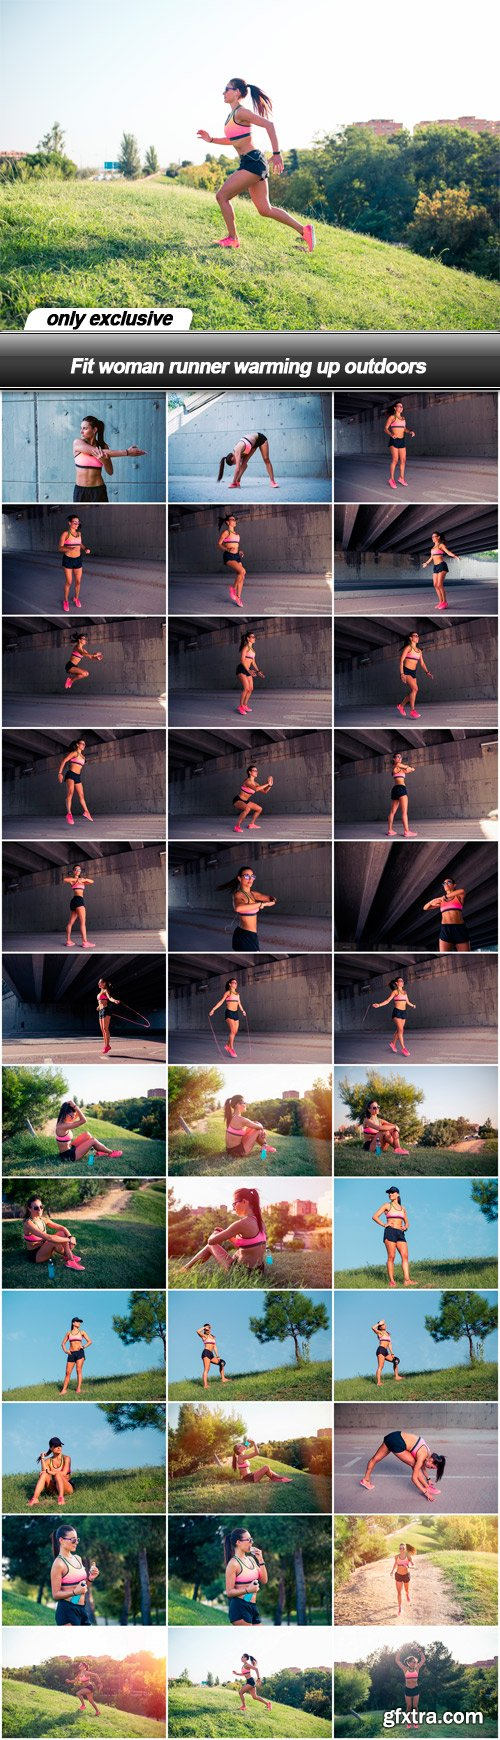 Fit woman runner warming up outdoors - 36 UHQ JPEG